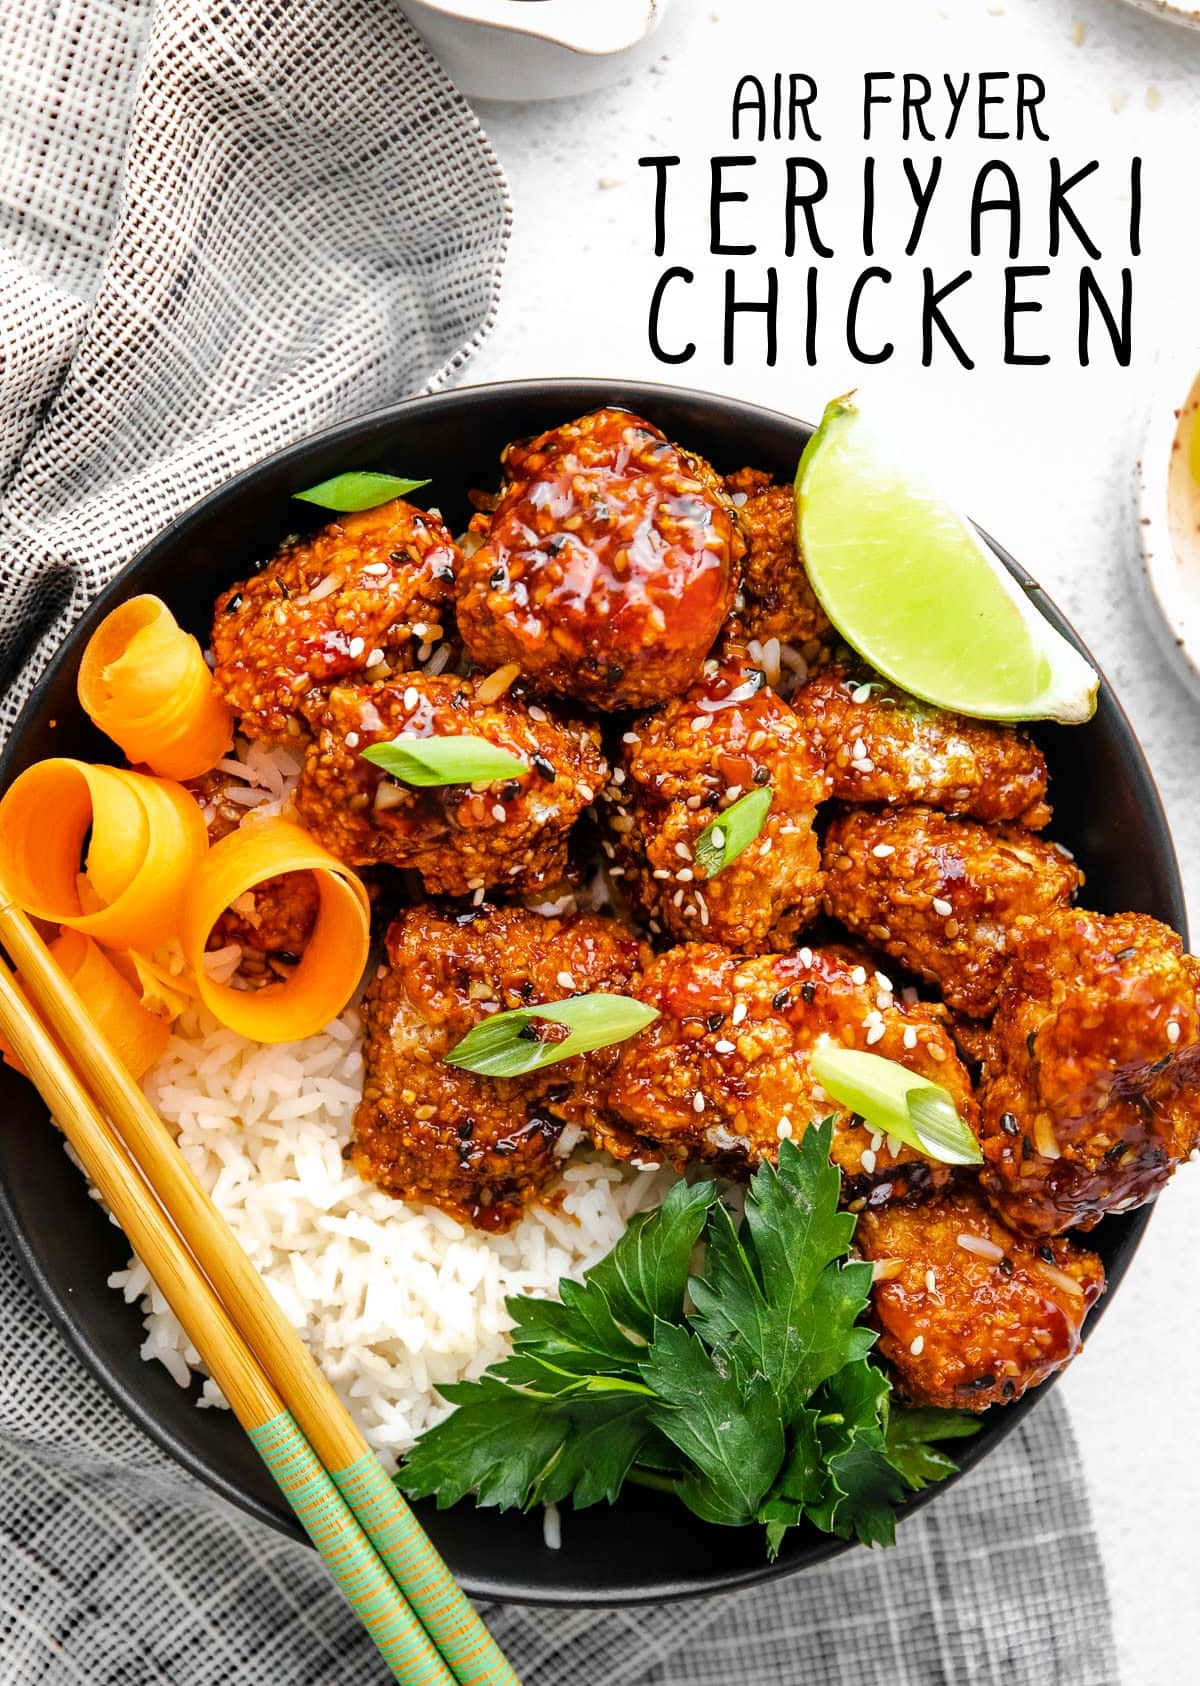 teriyaki chicken with rice in a black bowl next to a striped black and white towel. title overlay at top of image.